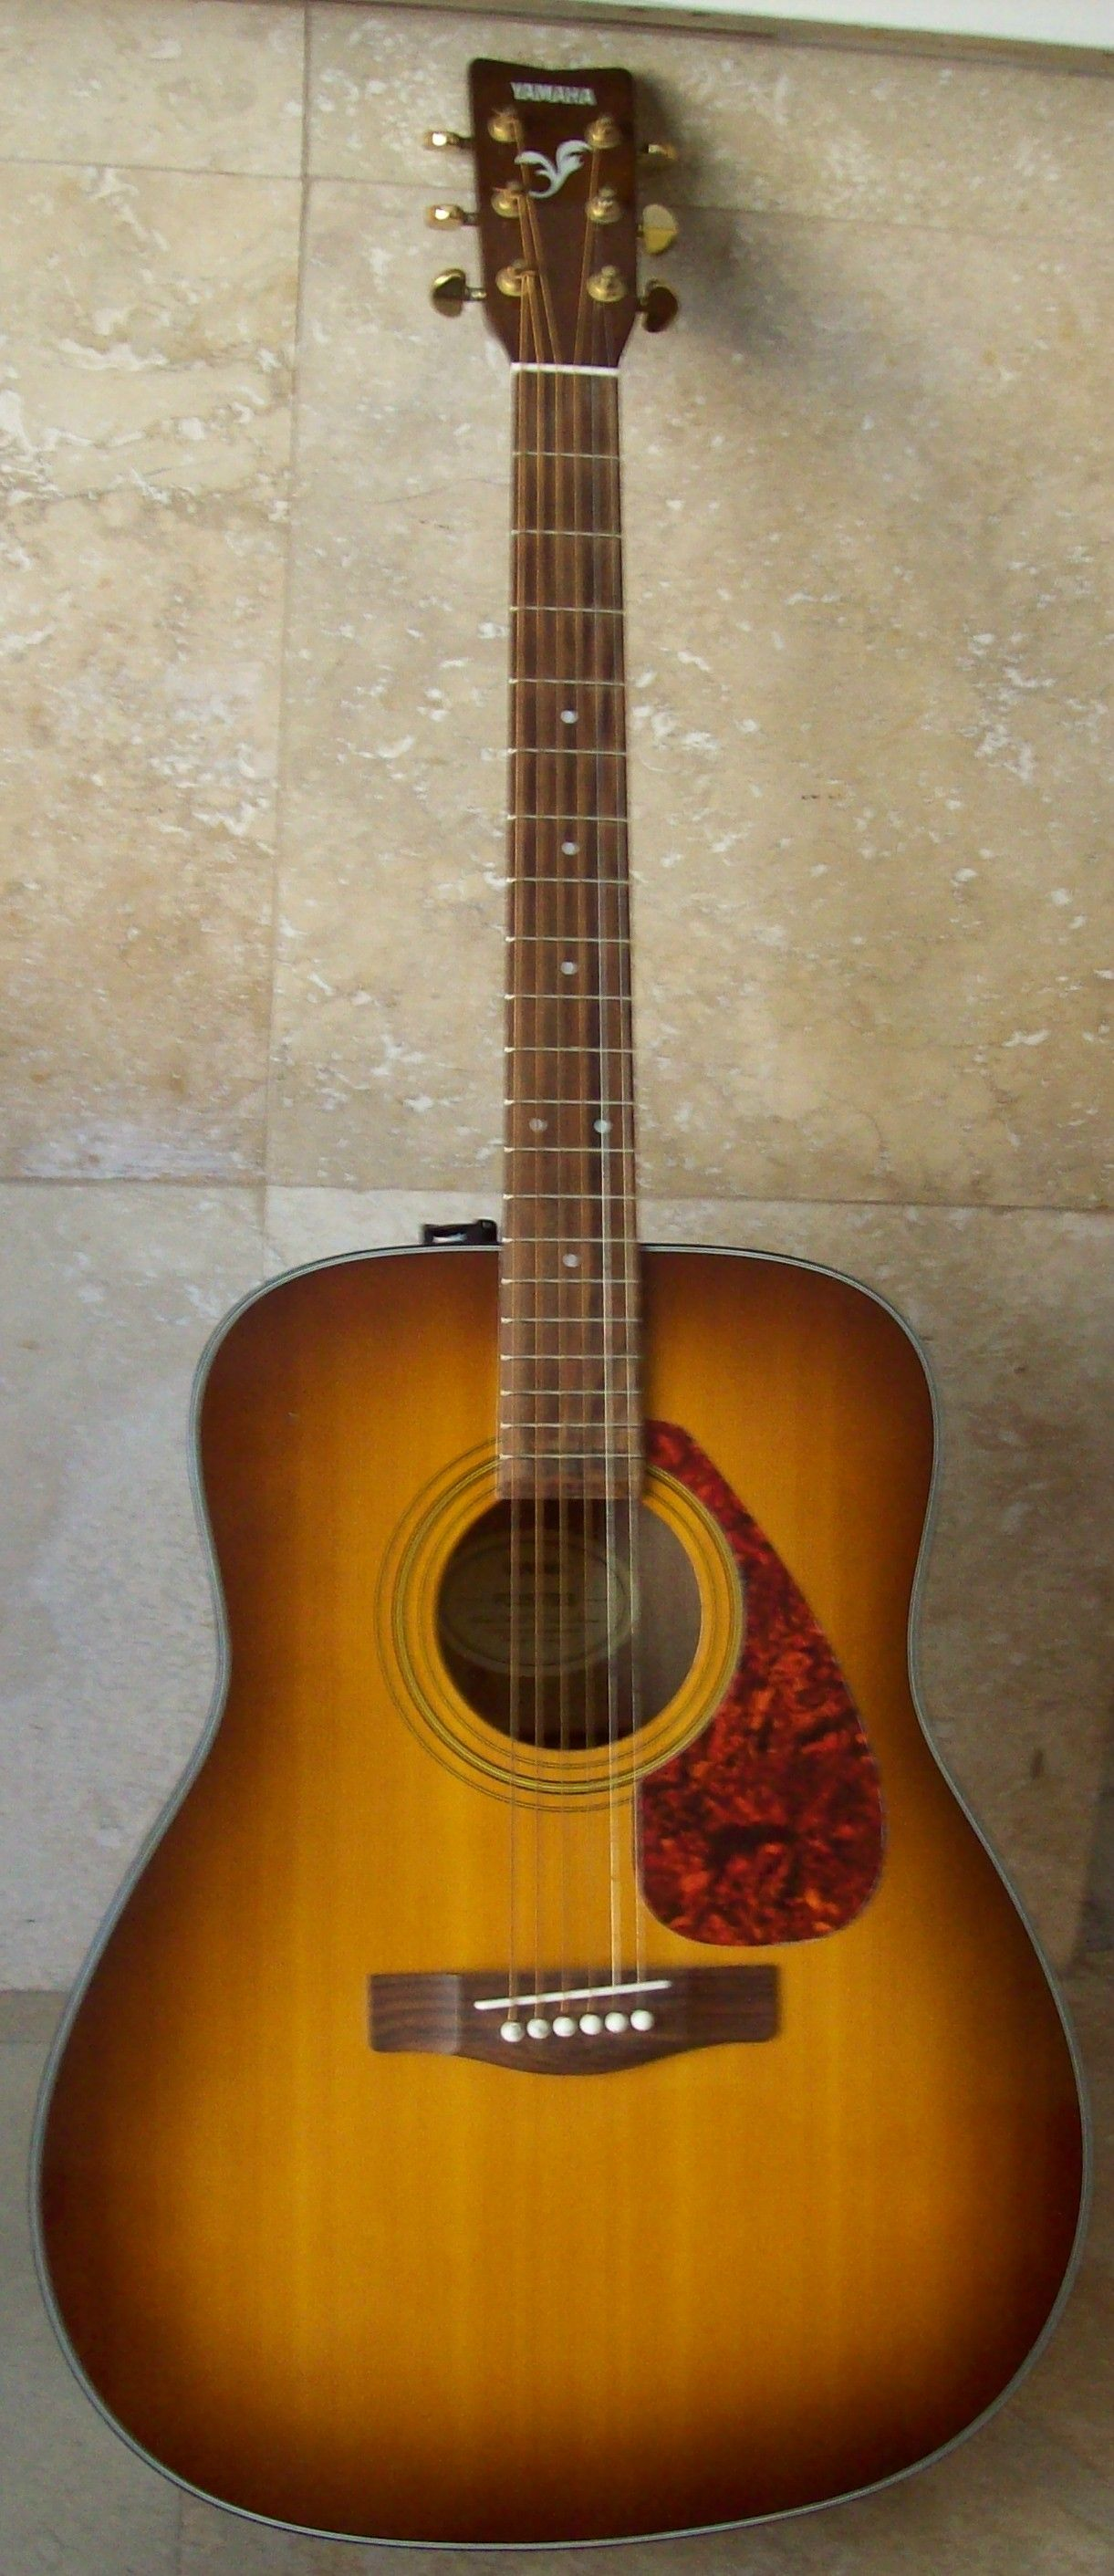 yamaha f335. vintage yamaha f335 tbs tobacco brown sunburst acoustic guitar